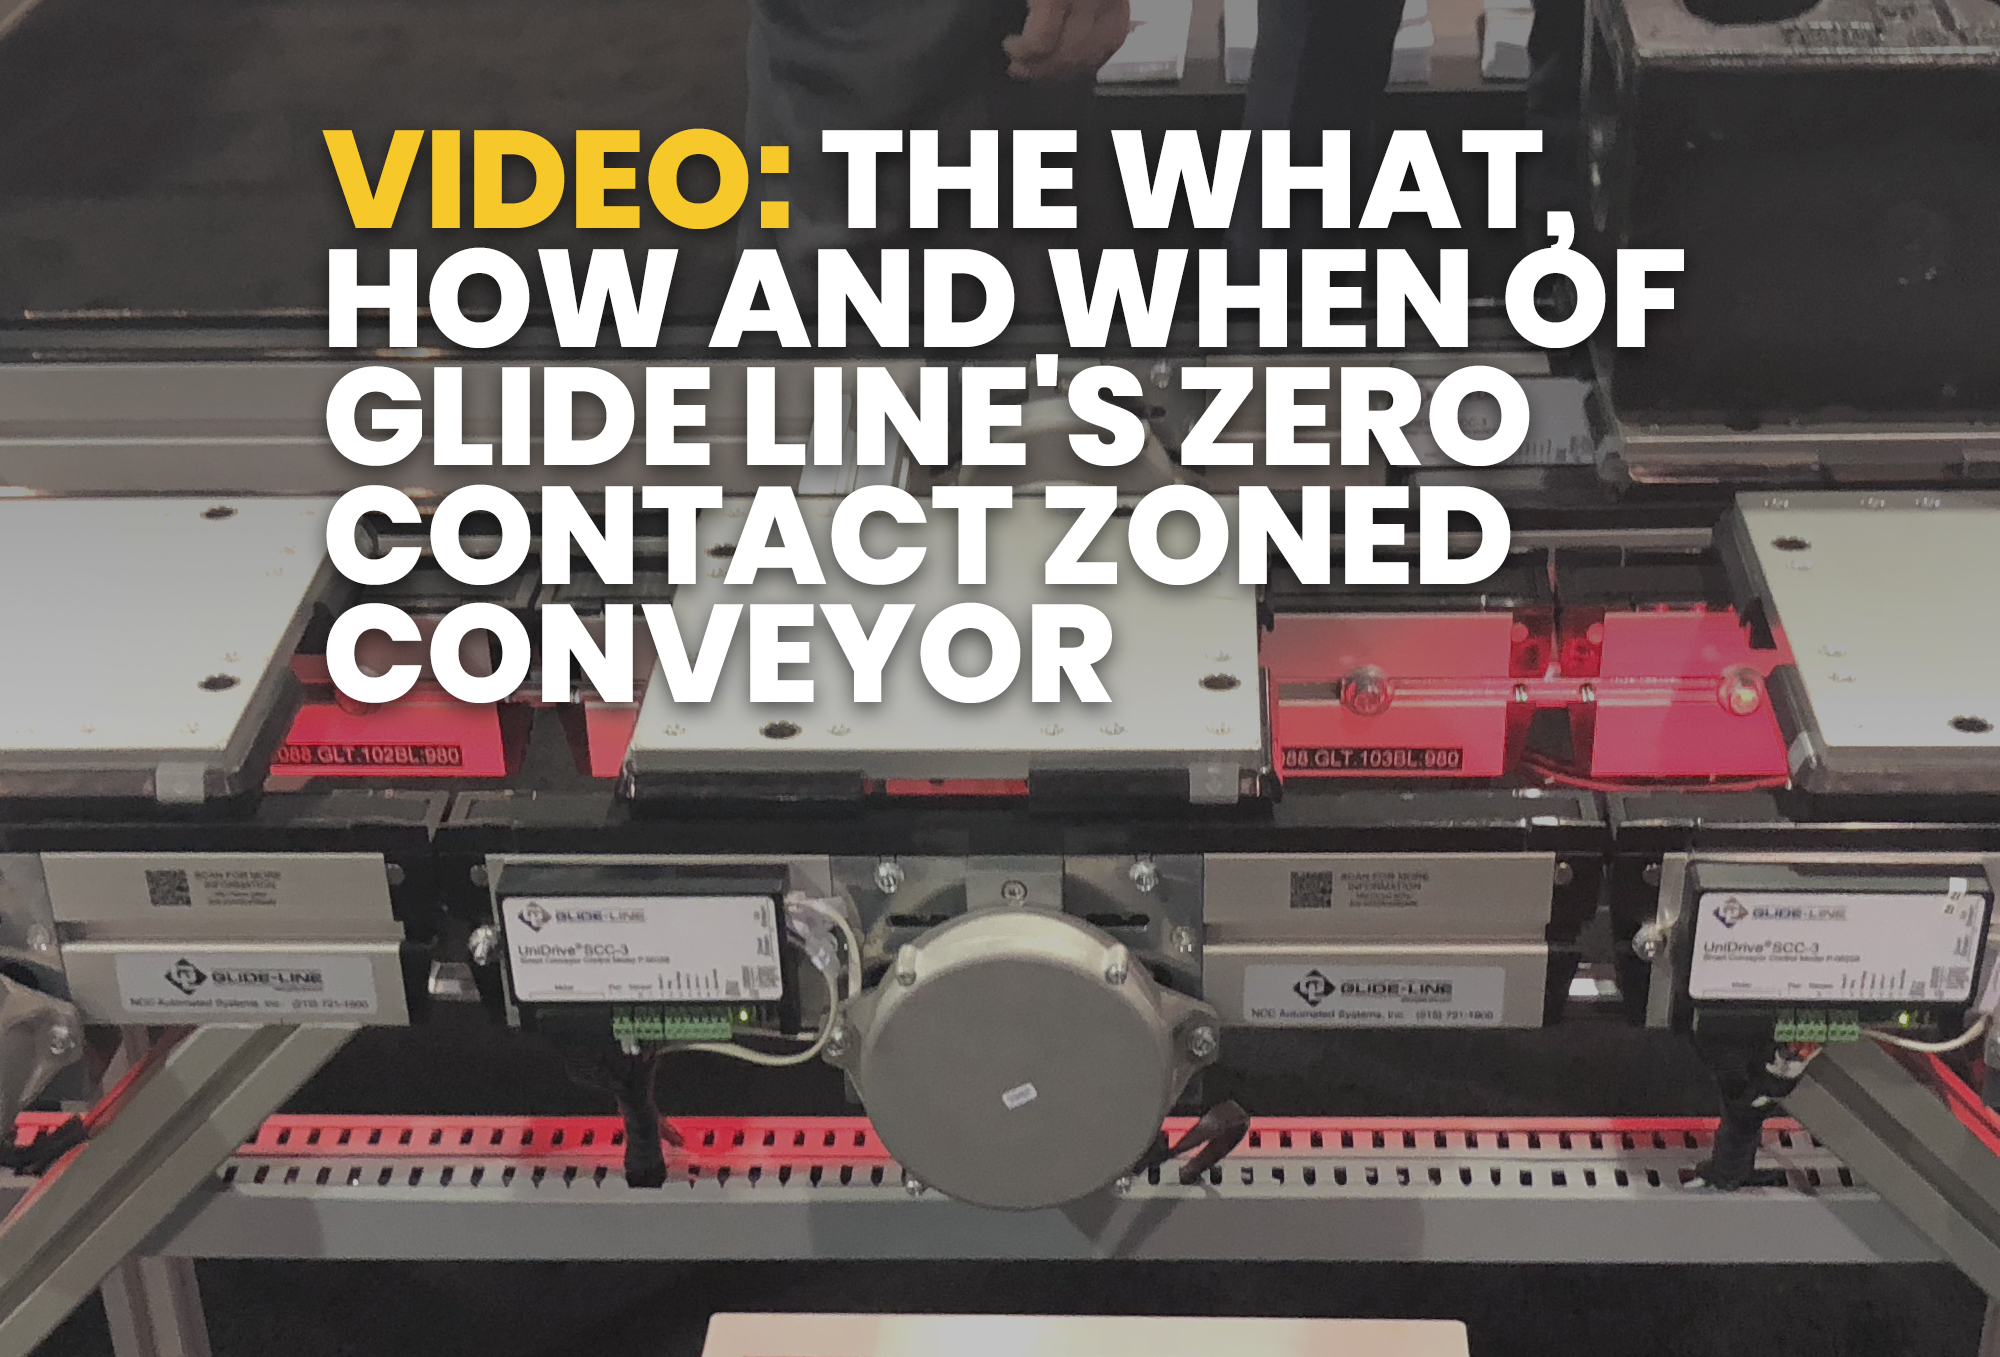 The What, How and When of Glide Lines Zero Contact Zoned Conveyor - Gallery copy-1